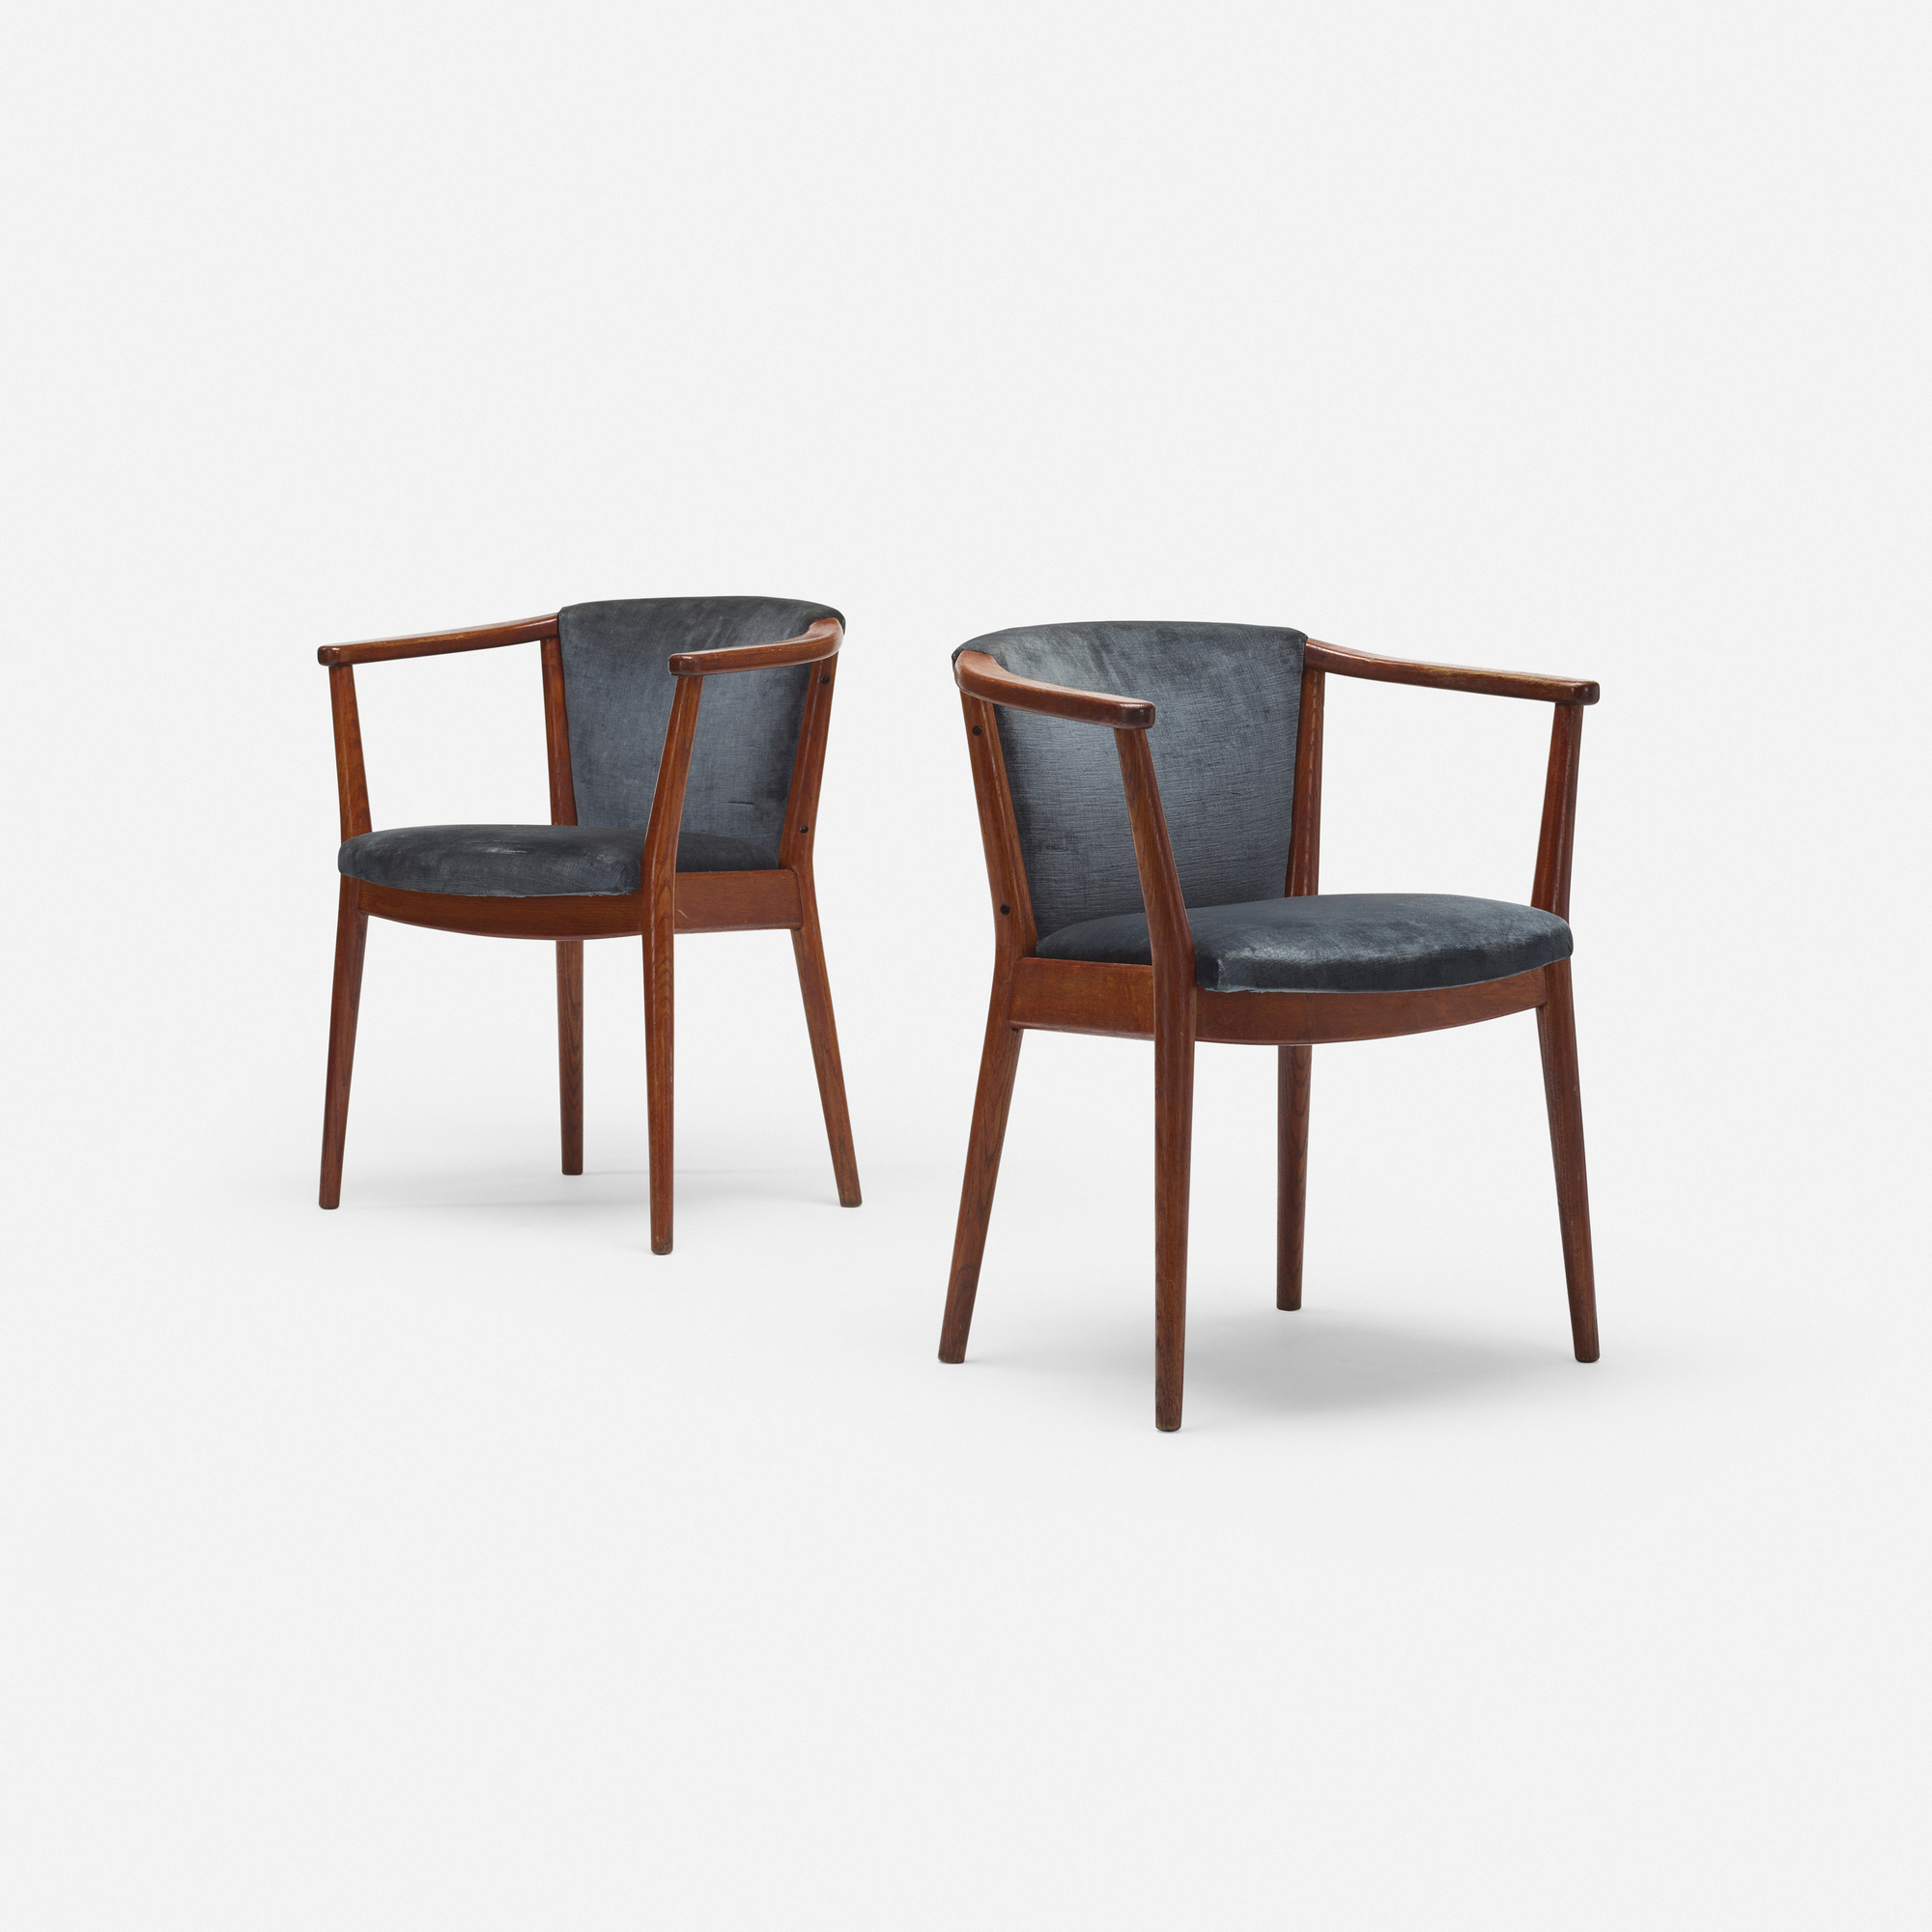 241: Nanna Ditzel, attribution / armchairs, pair (1 of 3)